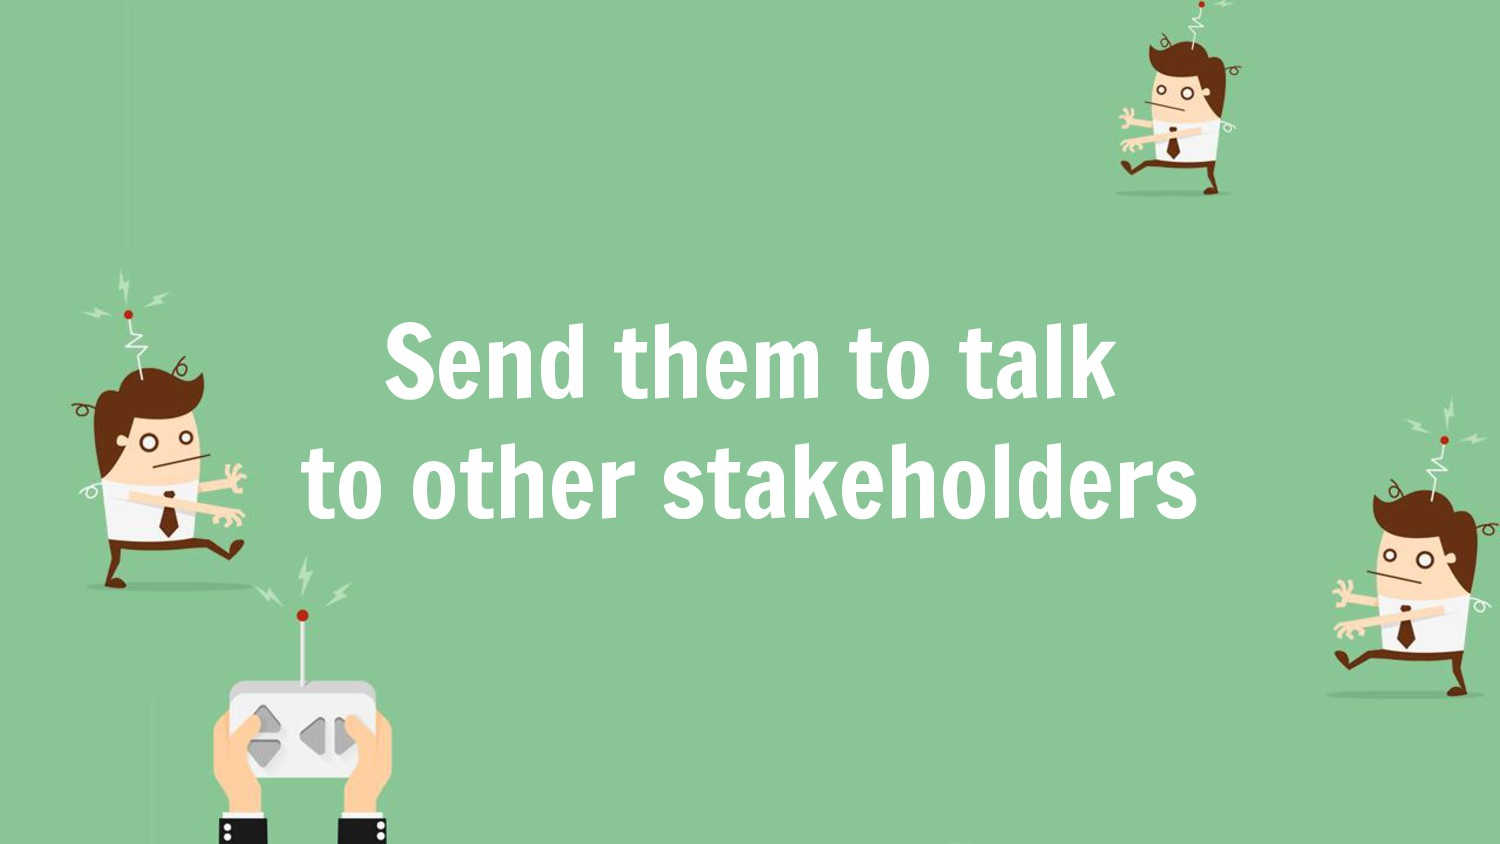 Send them to talk to other stakeholders